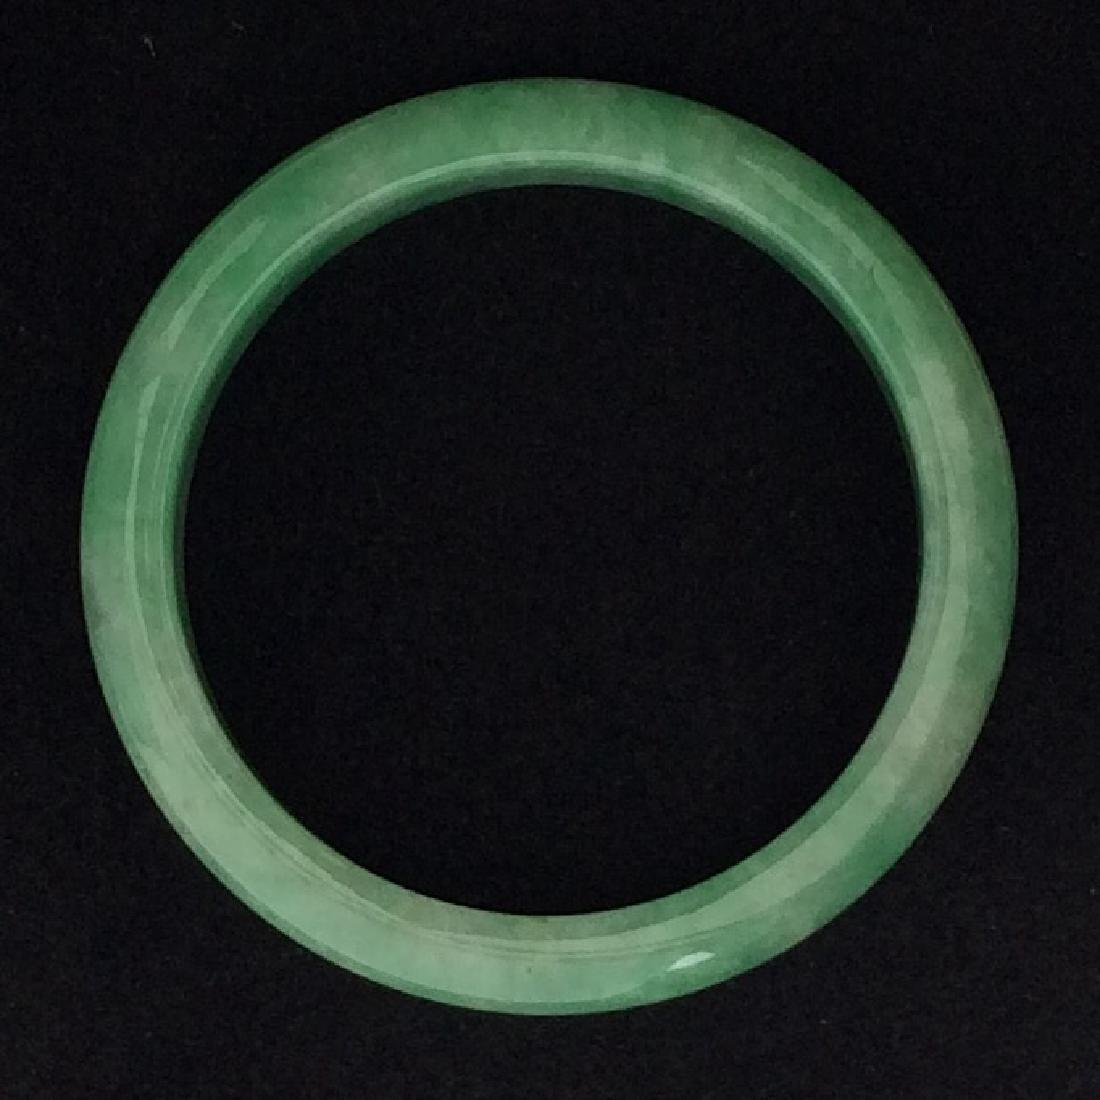 Chinese Certified Natural Jade Bangle w Certificate